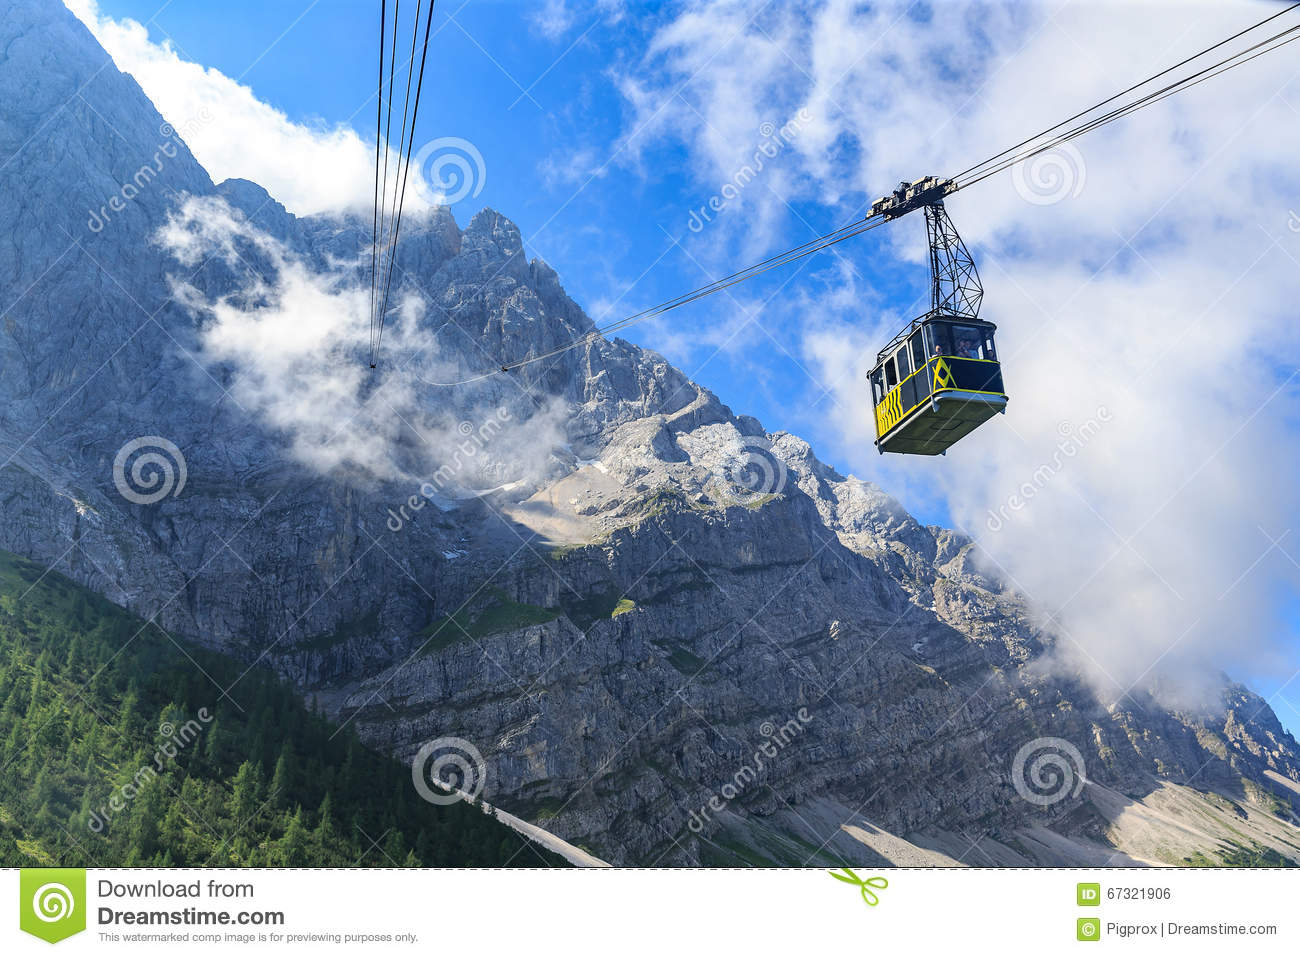 Download The Tramway From Eibsee To The Summit Of Zugspitze Stock Photo - Image of cable, tram: 67321906